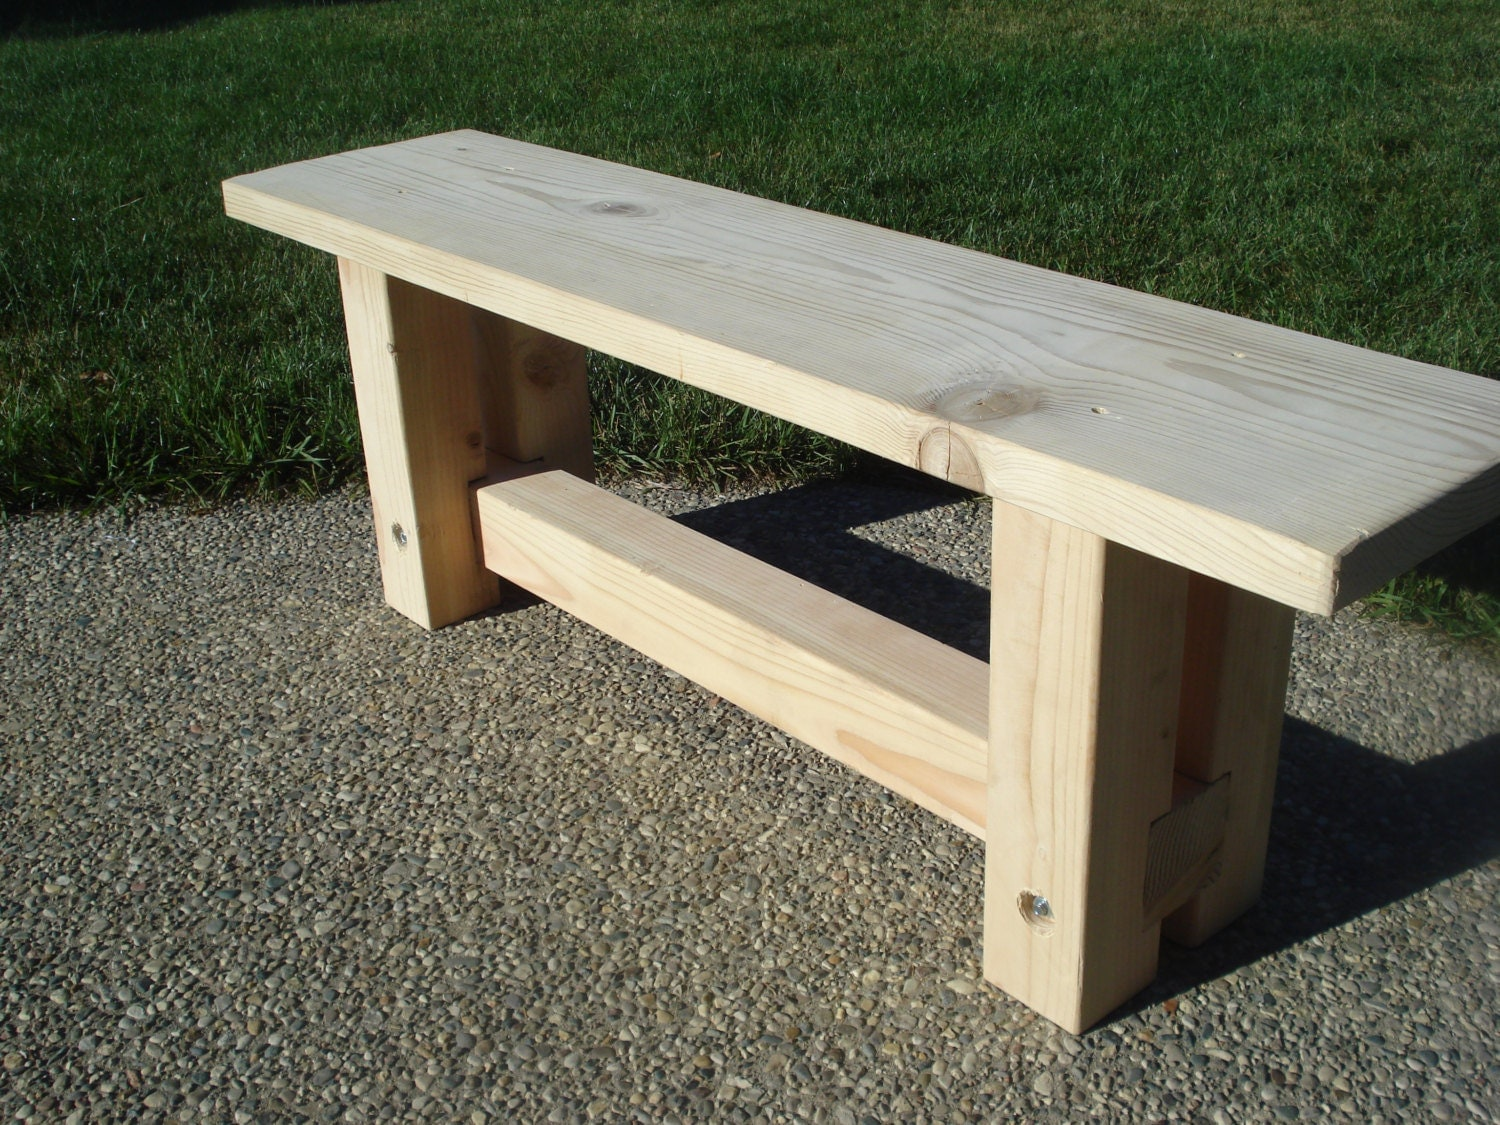 Unfinished Wooden Bench 28 Images 28 60x24x24 Unfinished Storage Bench Making Wooden